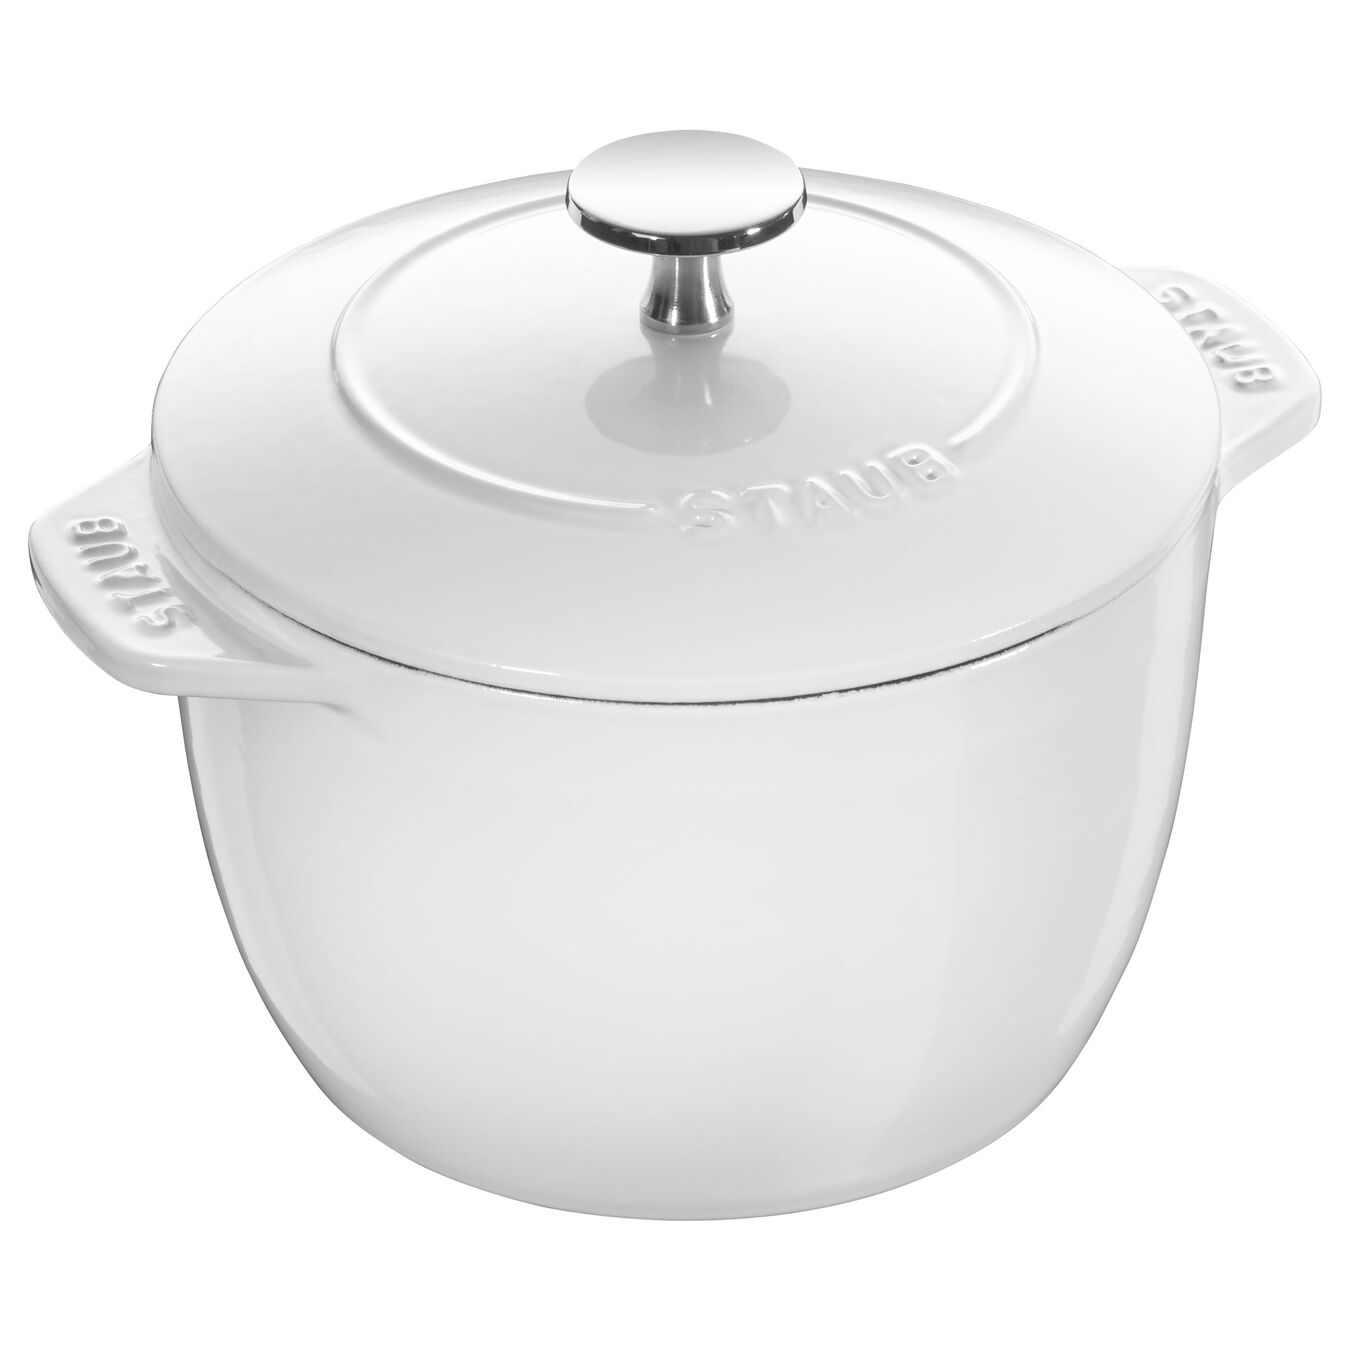 3.25-qt round Cast iron Petite French Oven, White,,large 1